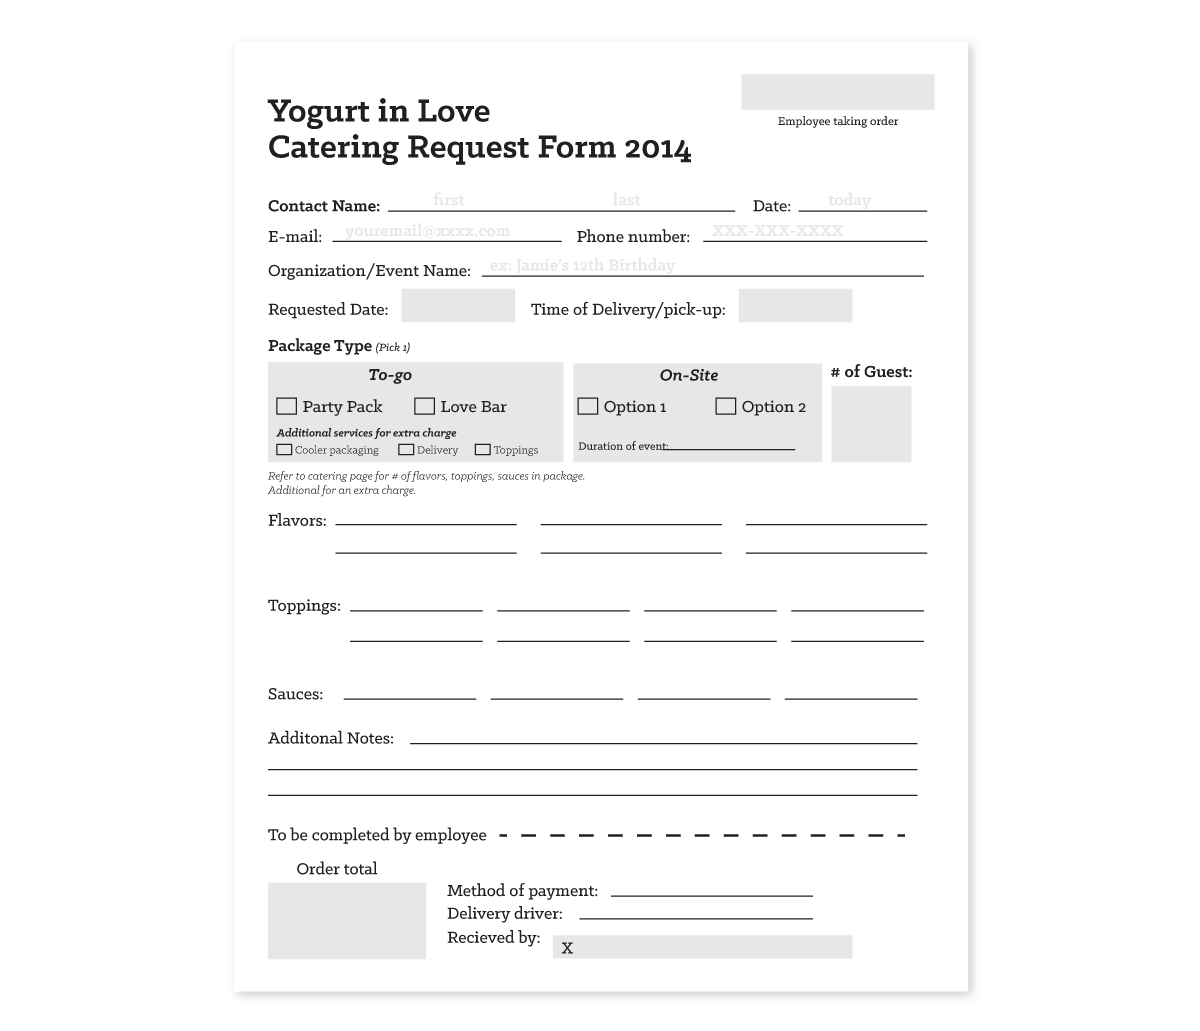 Good system design is about more than just pretty flyers. We also created corresponding forms for employees to fill out and keep the business running smoothly.